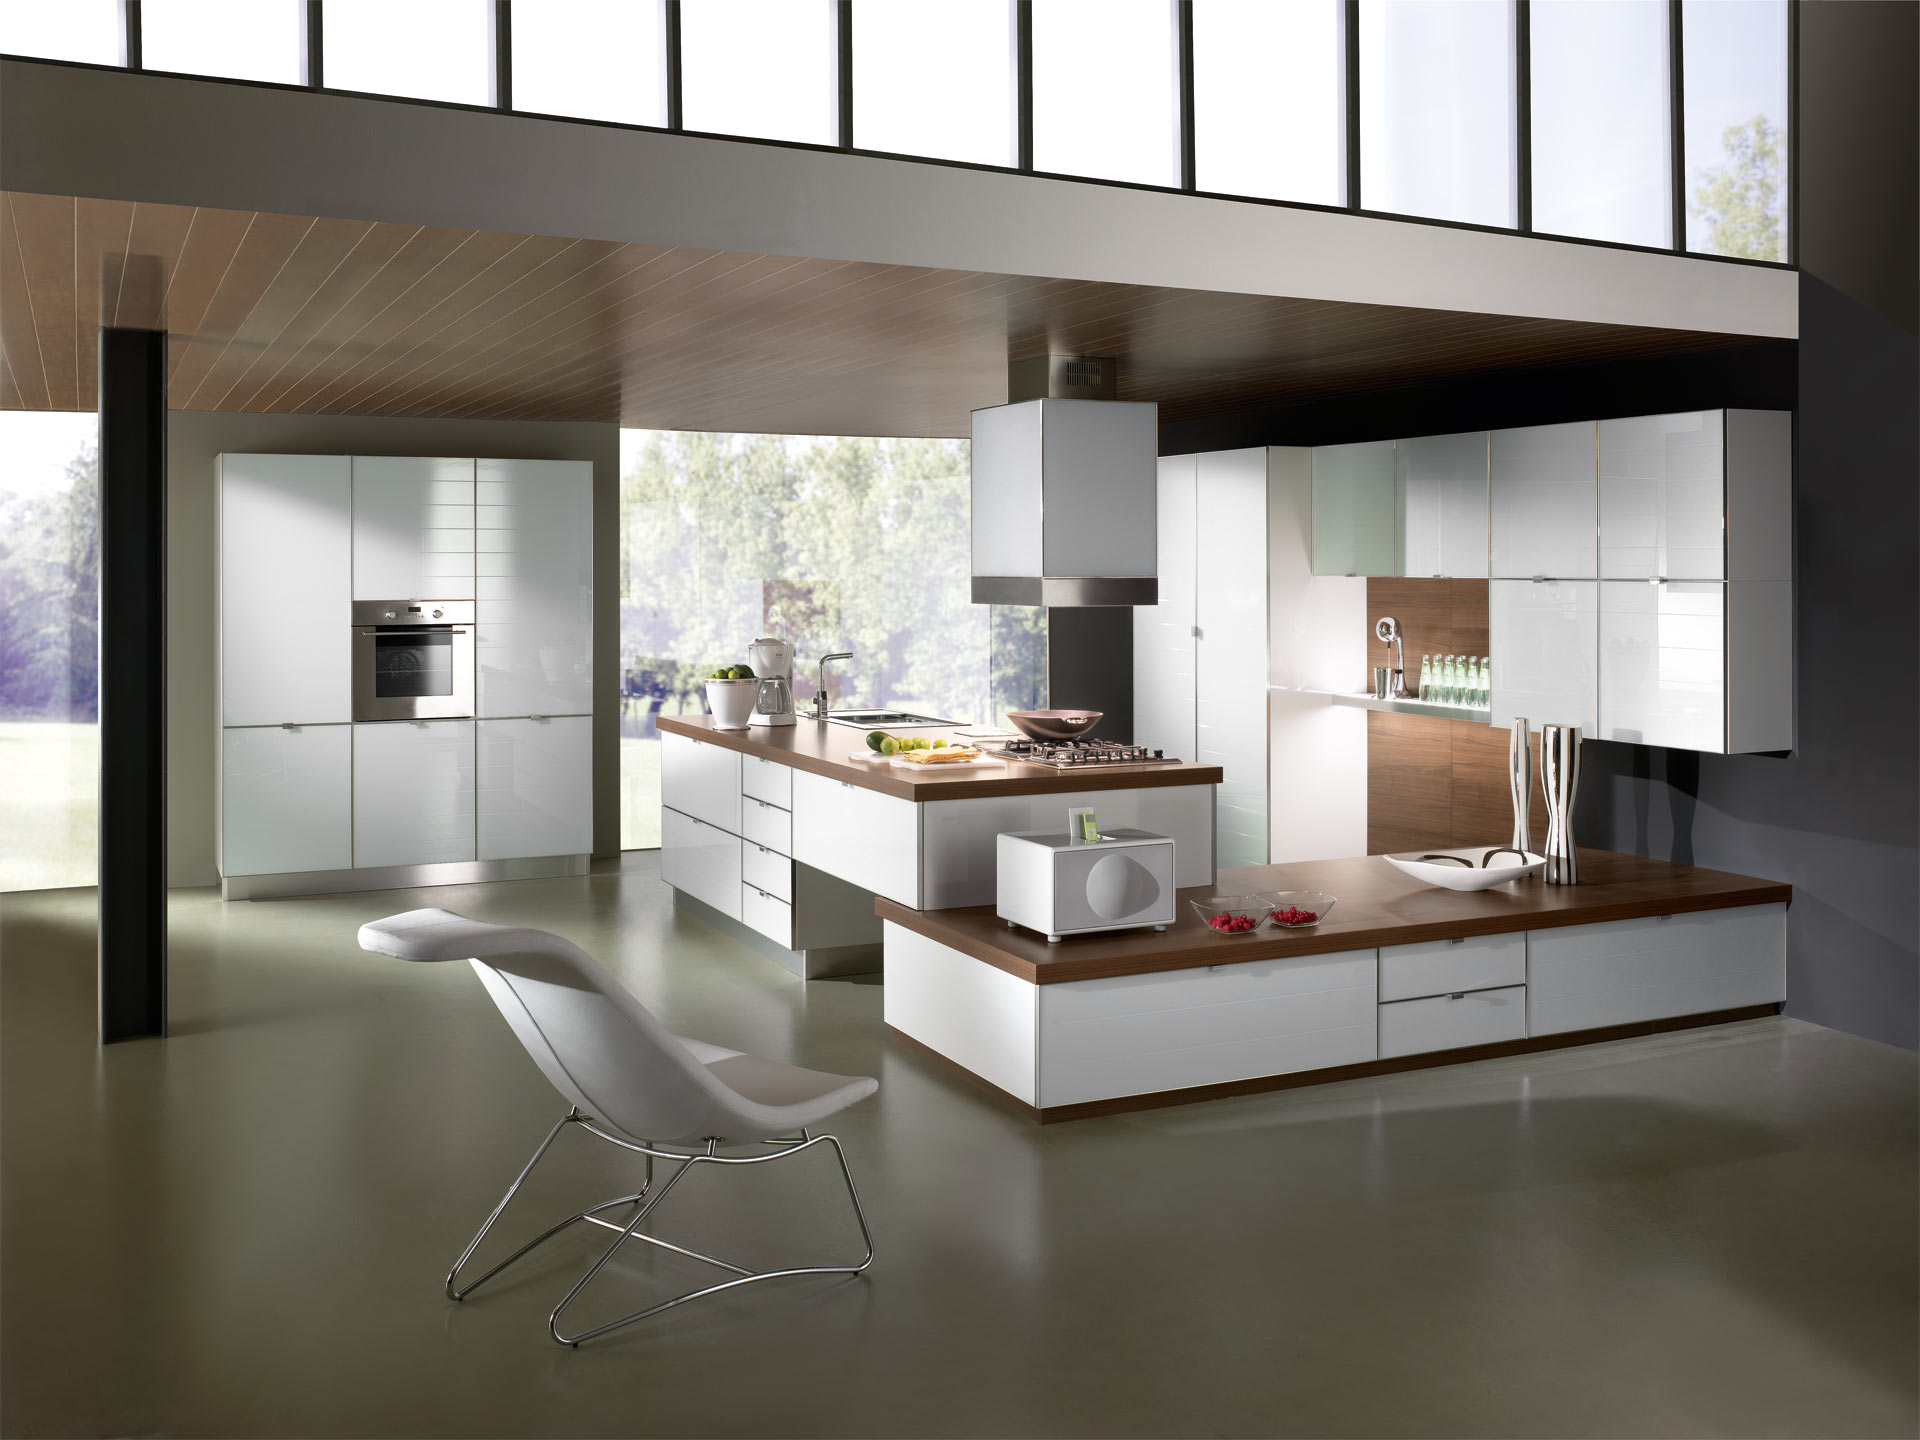 Biennale - Ideal solutions for an ideal home - kitchens, bedrooms ...